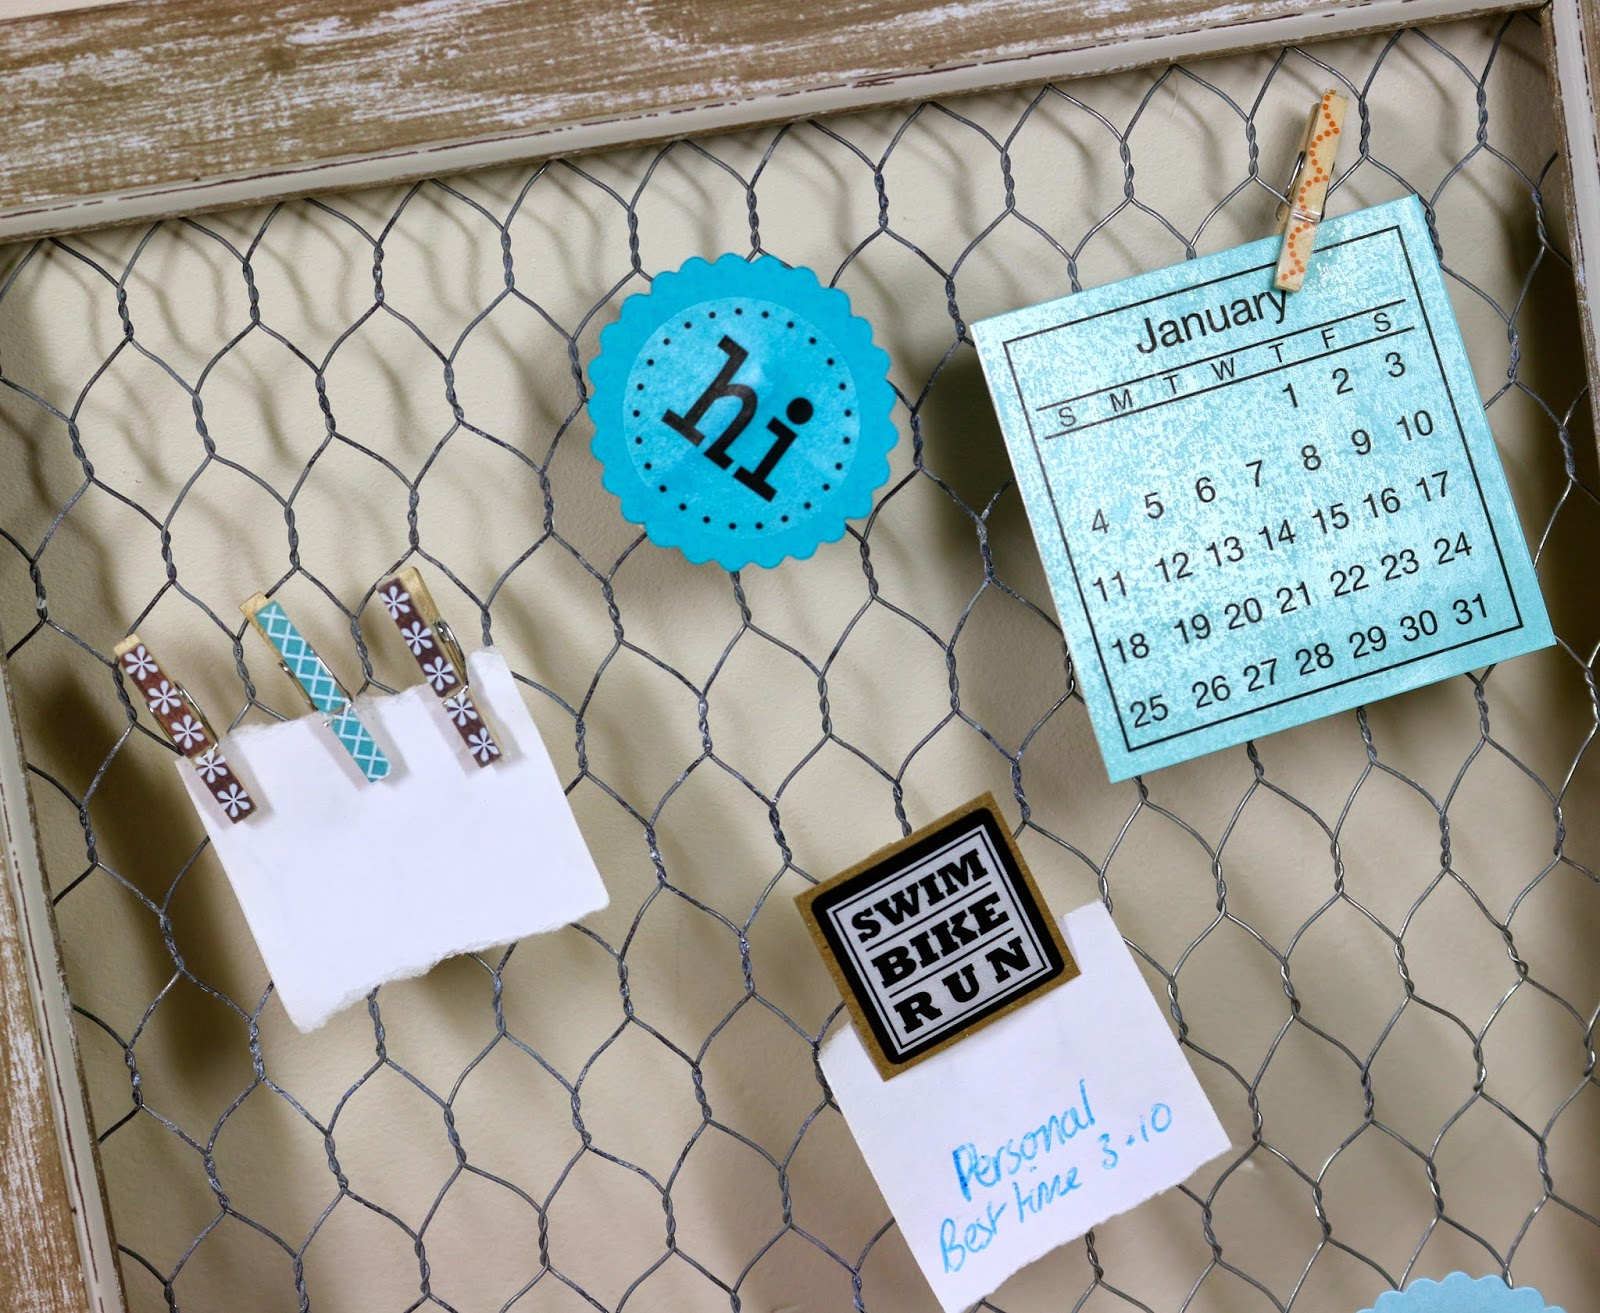 SRM Stickers Blog - Chicken Wire Bulletin Board by Cathy A. - #altered project #homedecor #calendars #stickers #punched pieces #twine #2015 #embossed kraft bags #DIY